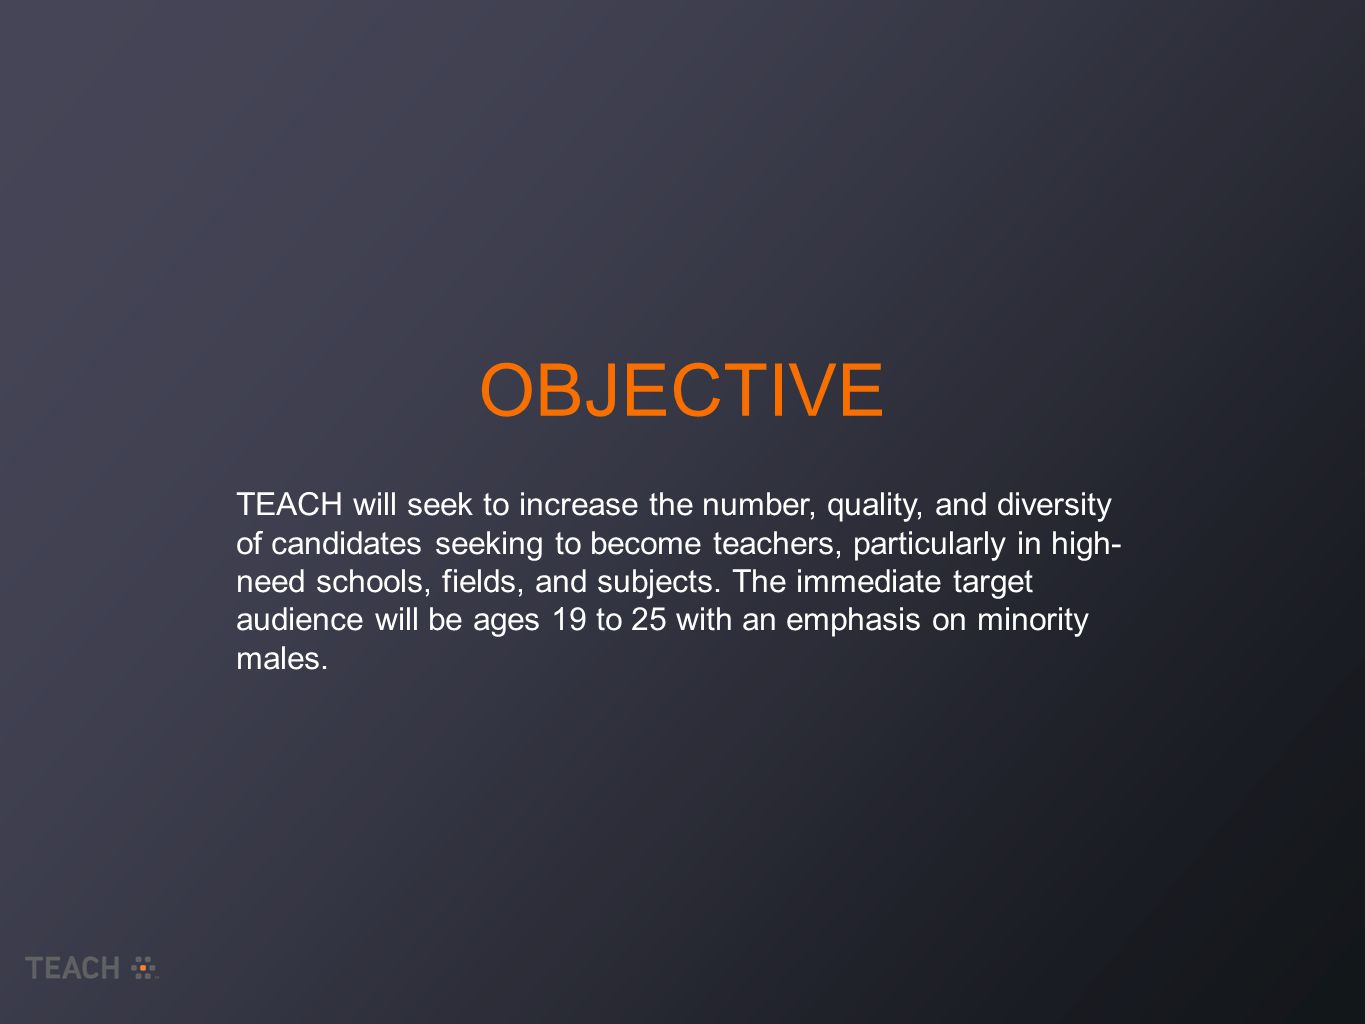 OBJECTIVE TEACH will seek to increase the number, quality, and diversity of candidates seeking to become teachers, particularly in high- need schools, fields, and subjects.